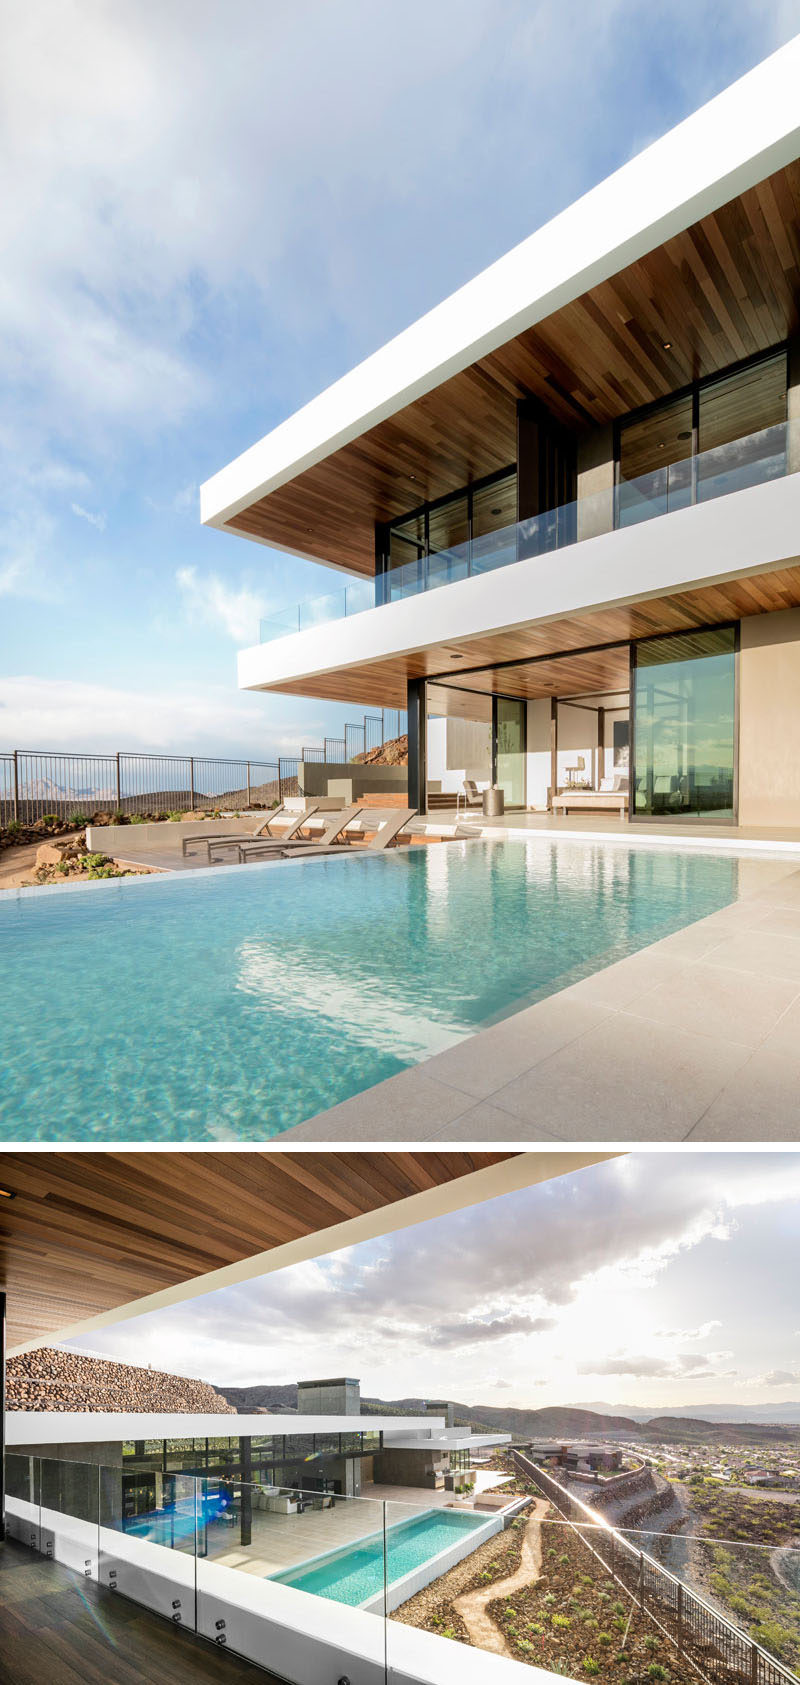 The backyard / pool area of this modern house has multiple spaces for lounging in the sun and enjoying the view.